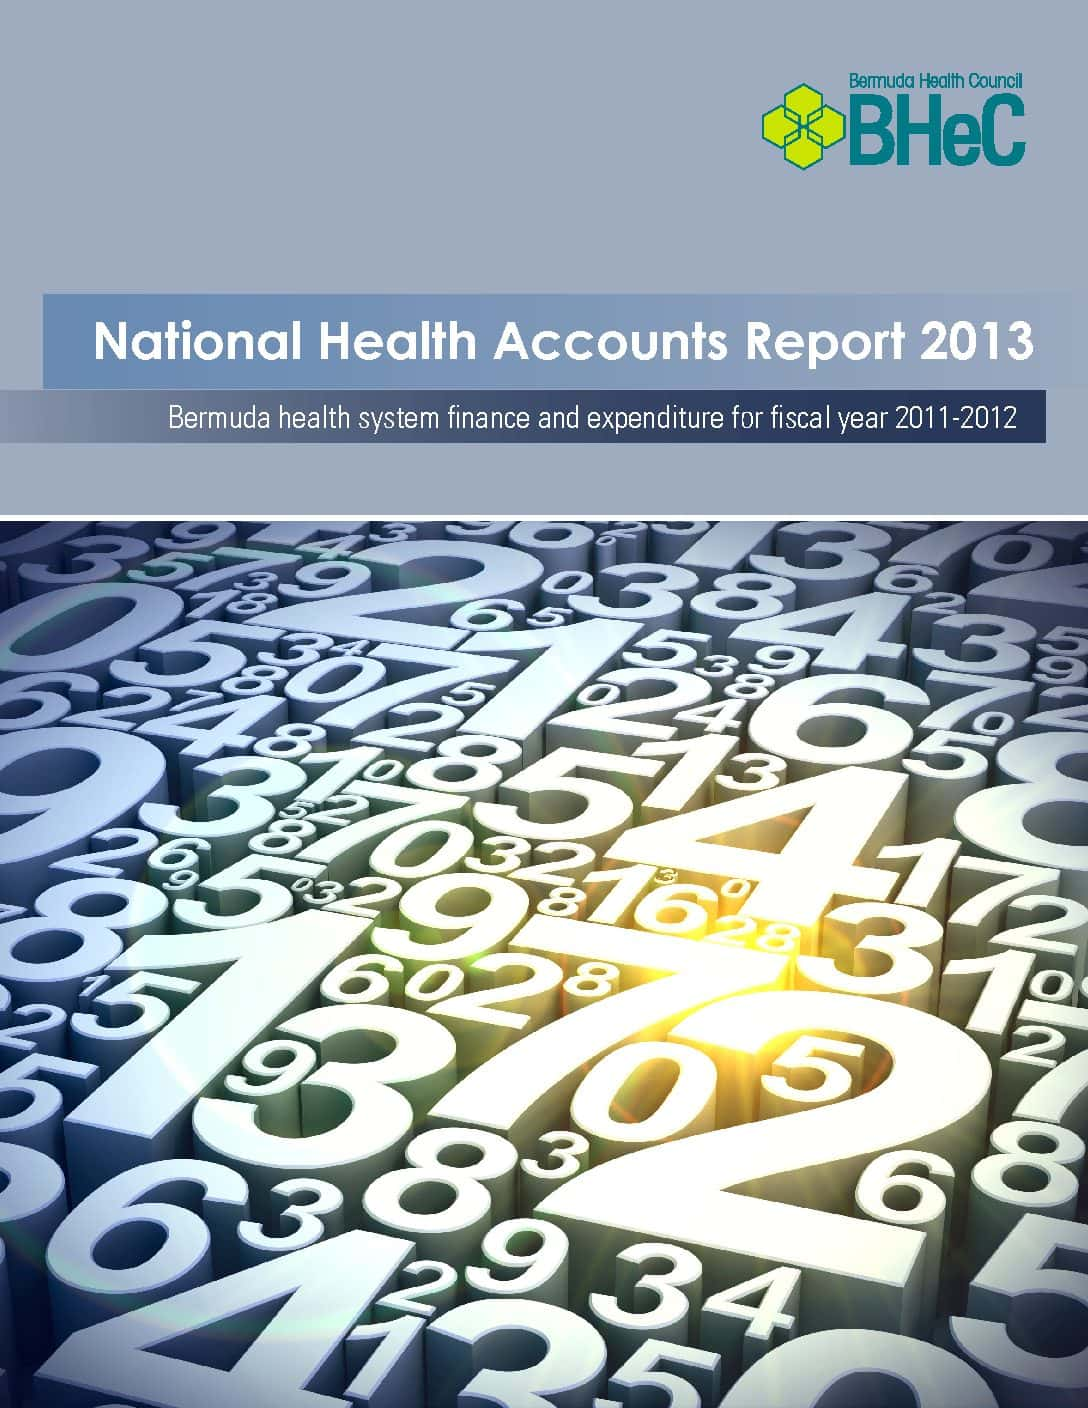 2013 National Health Accounts